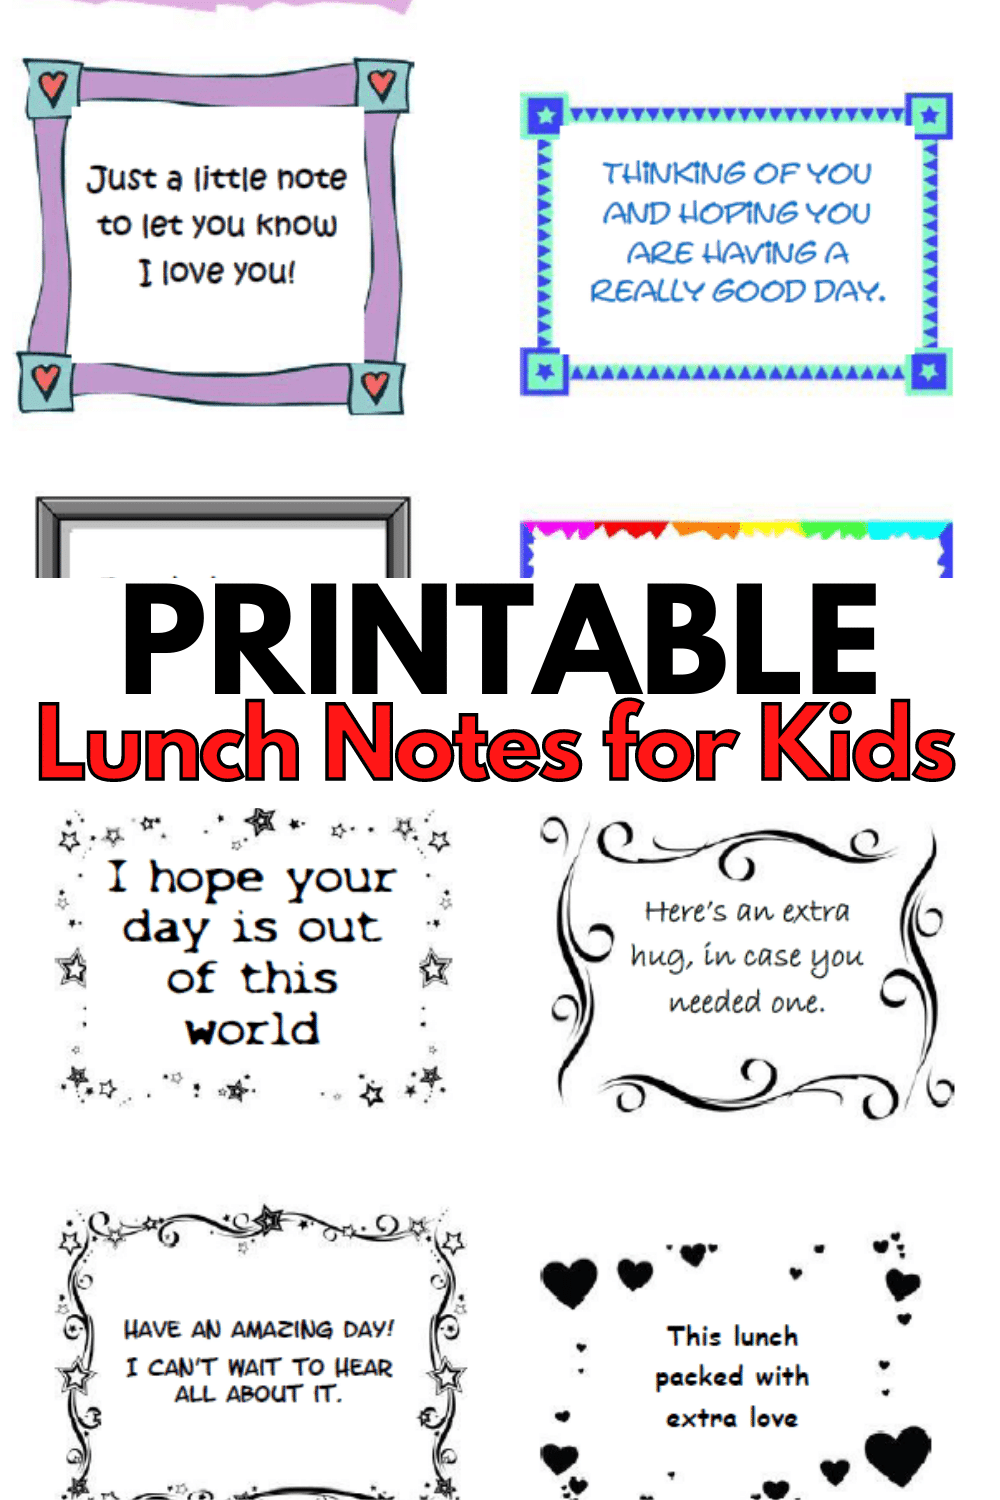 Stay connected to your kids while they're at school by including printable lunch notes in their lunch box to let them know you care. #lunchnotes #forkids #freeprintable via @wondermomwannab